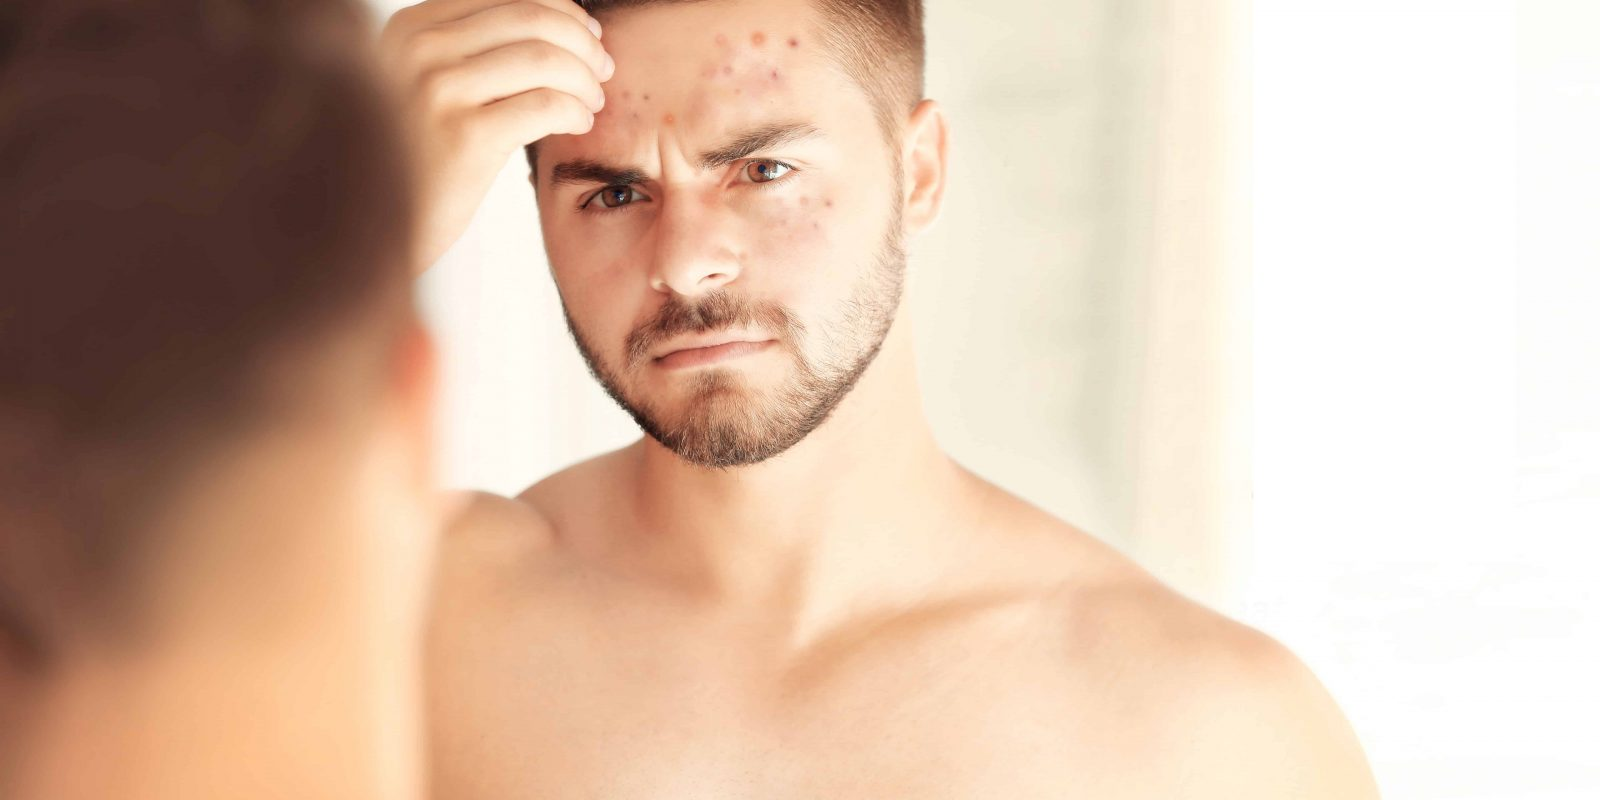 Beard and Skin Care Tips for Oily Skin